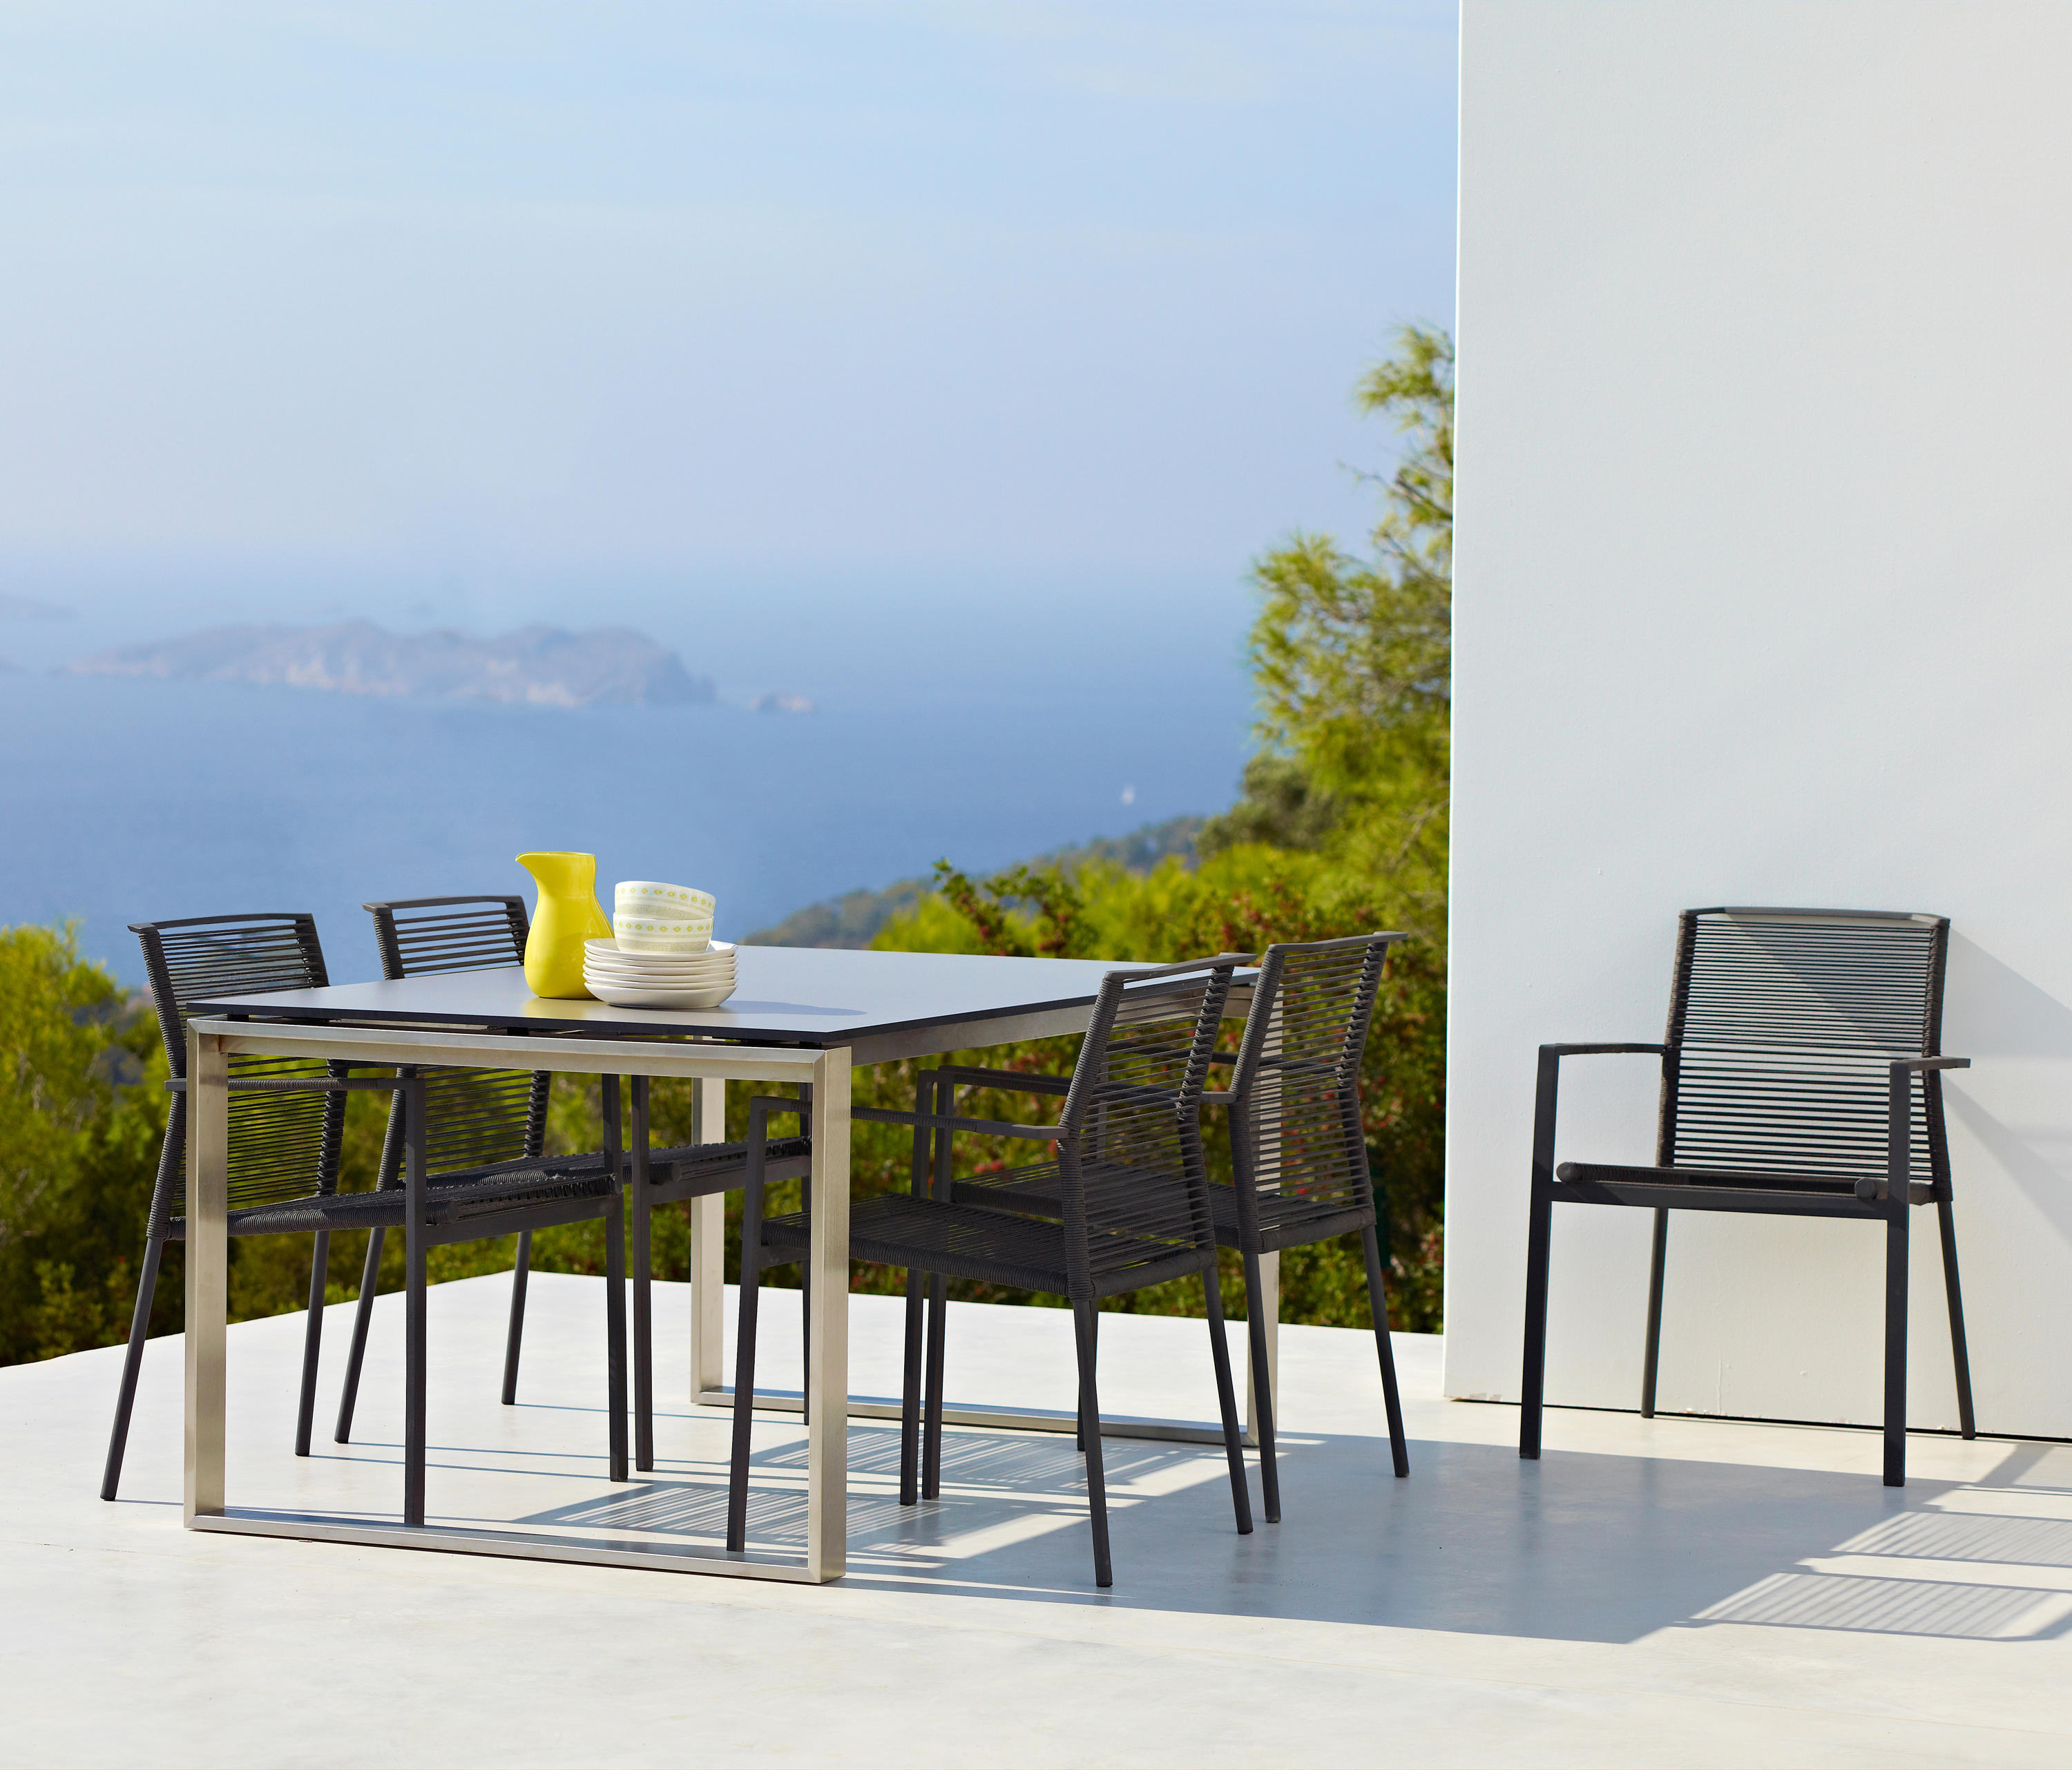 EDGE ARMCHAIR - Garden chairs from Cane-line | Architonic